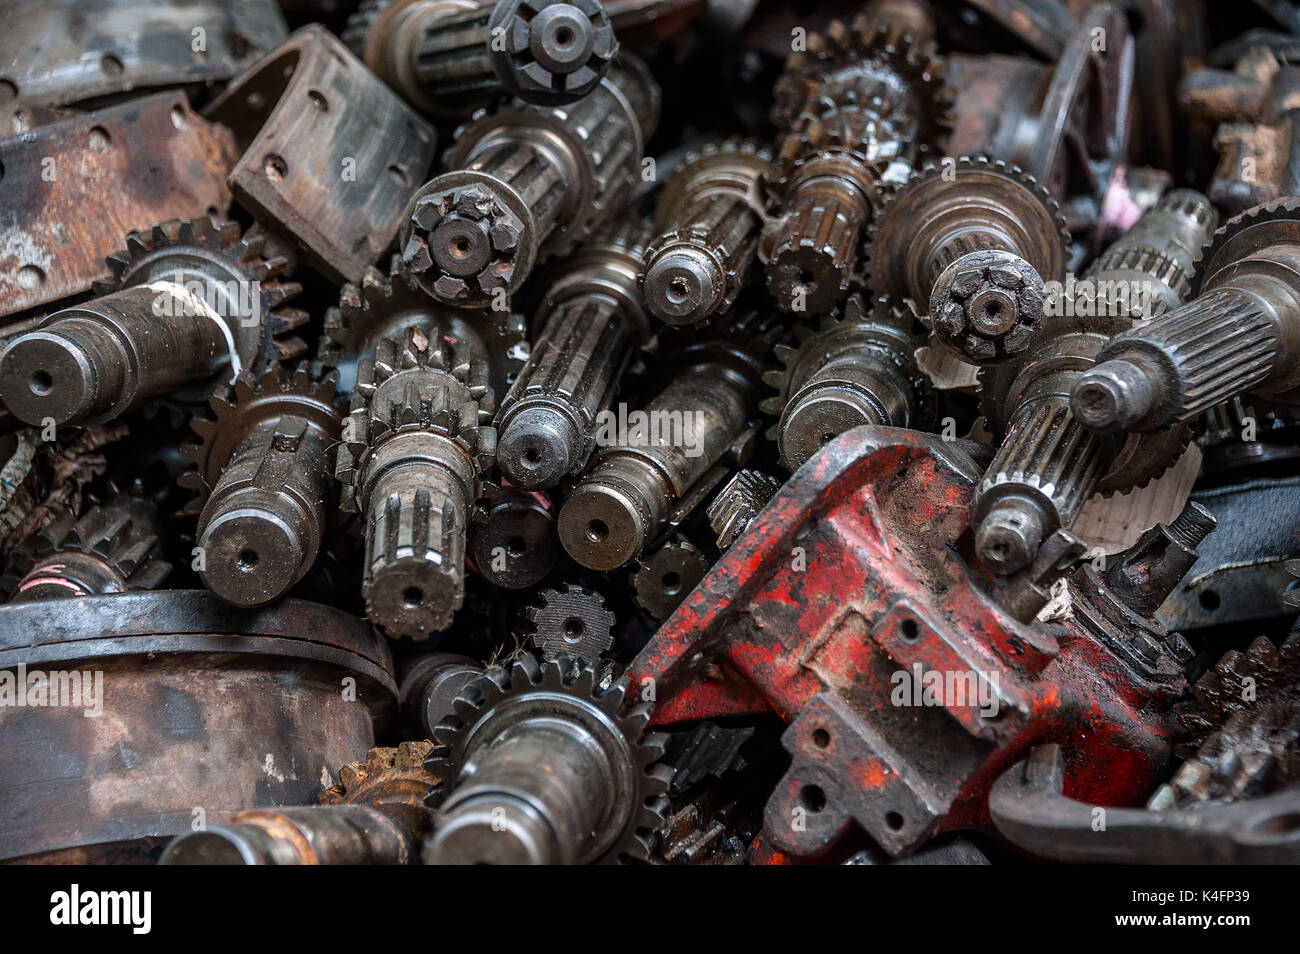 Used For Parts Stockfotos & Used For Parts Bilder - Alamy